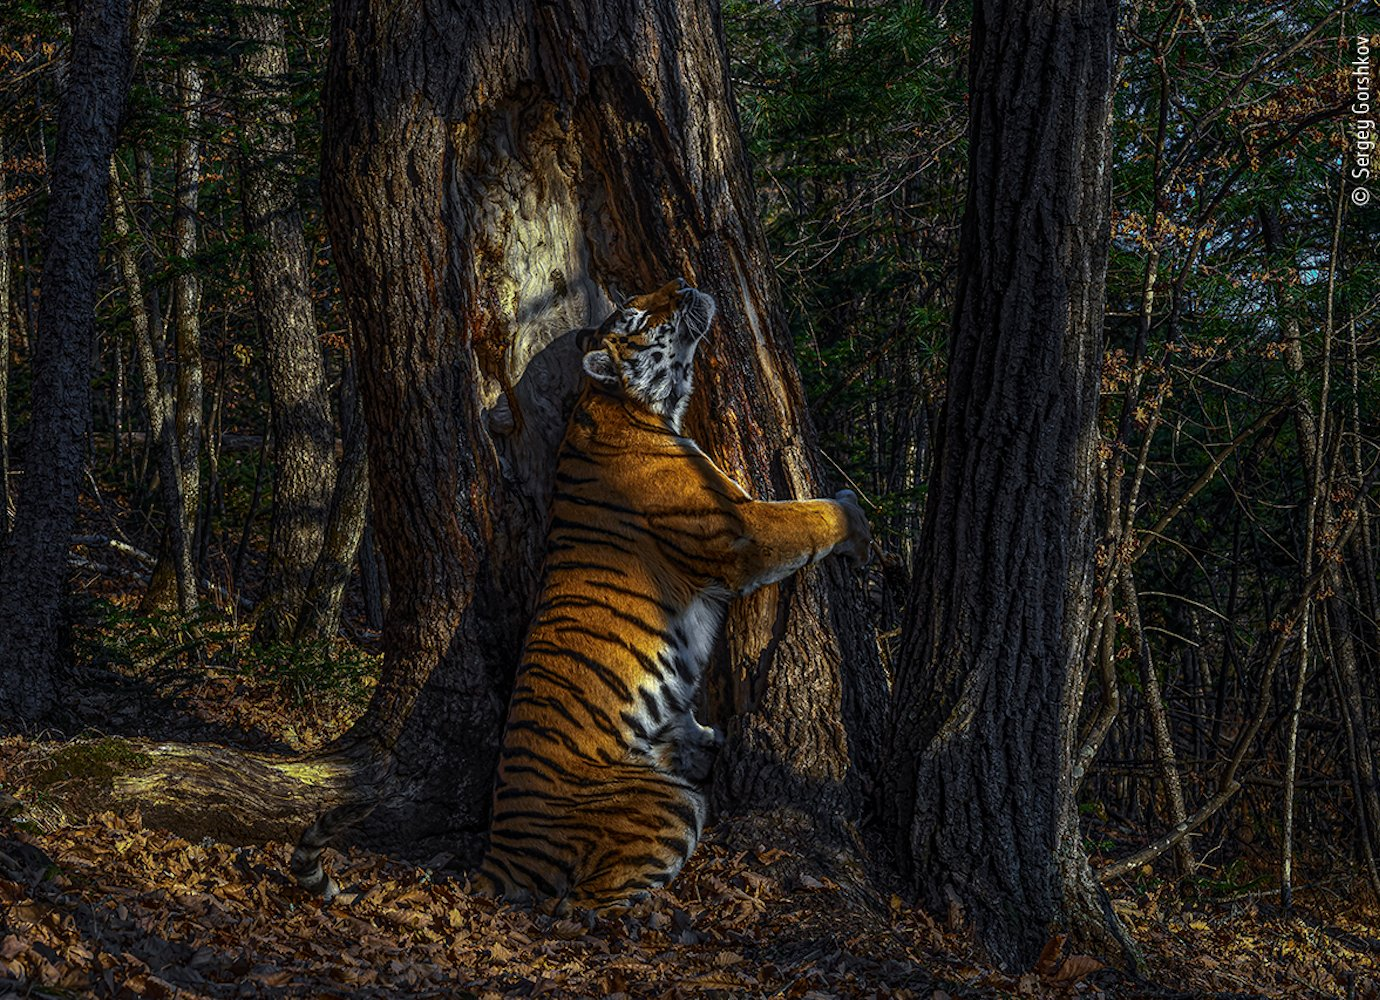 Wildlife Photographer of the Year 2020 was awarded the 'Tiger Embrace'